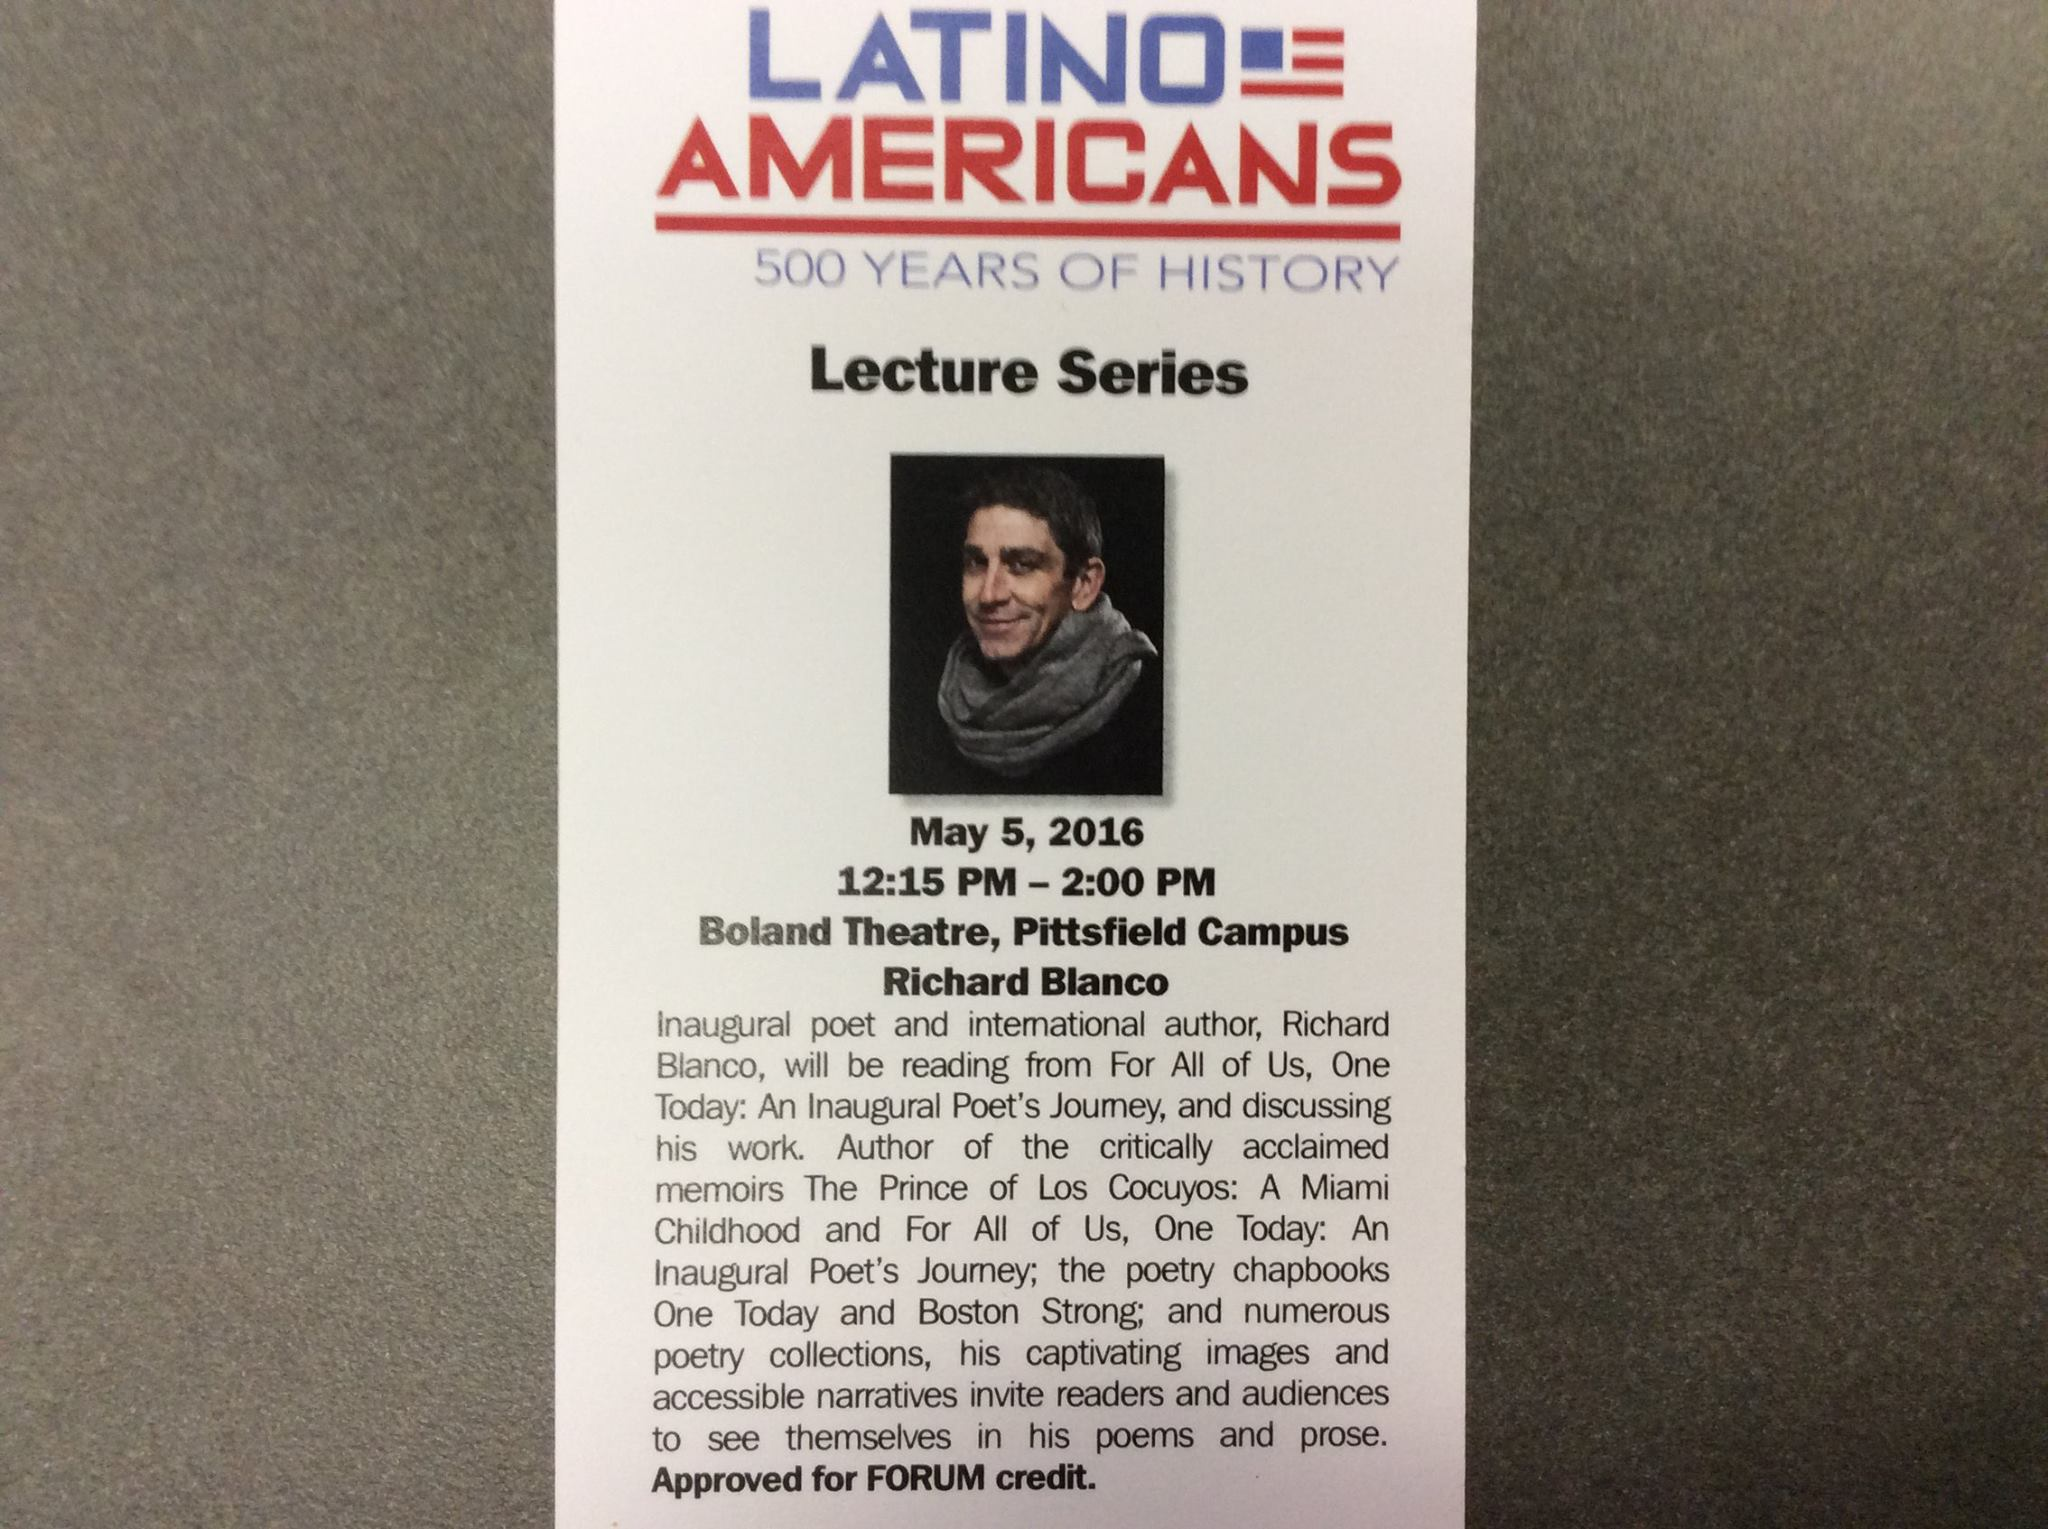 Richard Blanco Lecture, May 5, 2016